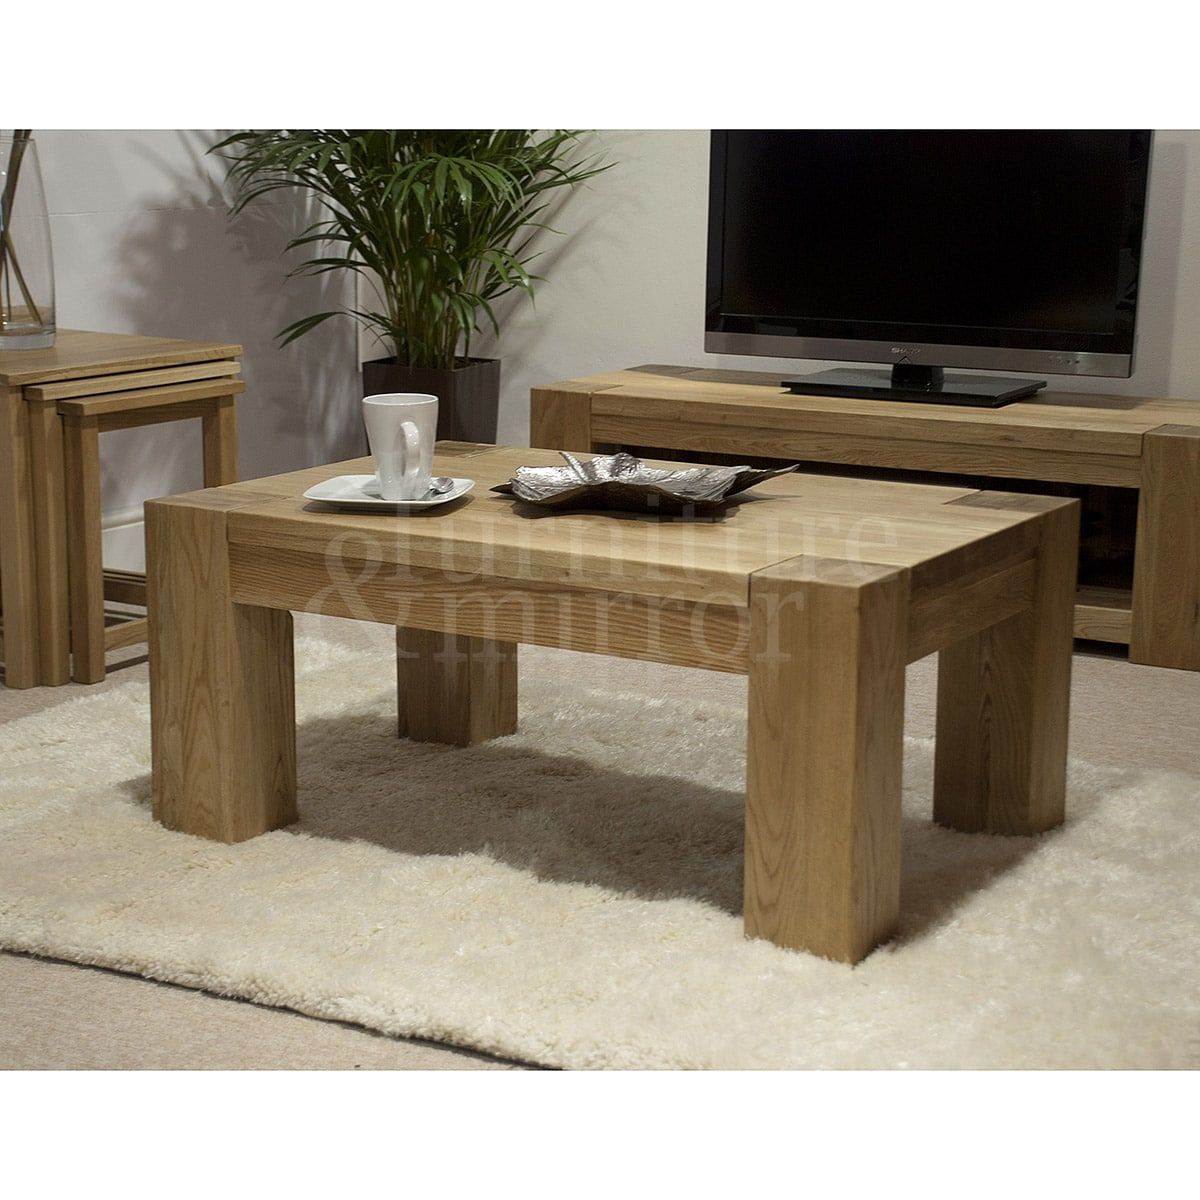 Toulouse 3x2 Coffee Table 225 00 Toulouse 3x2 Coffee Table Tou3x2ct